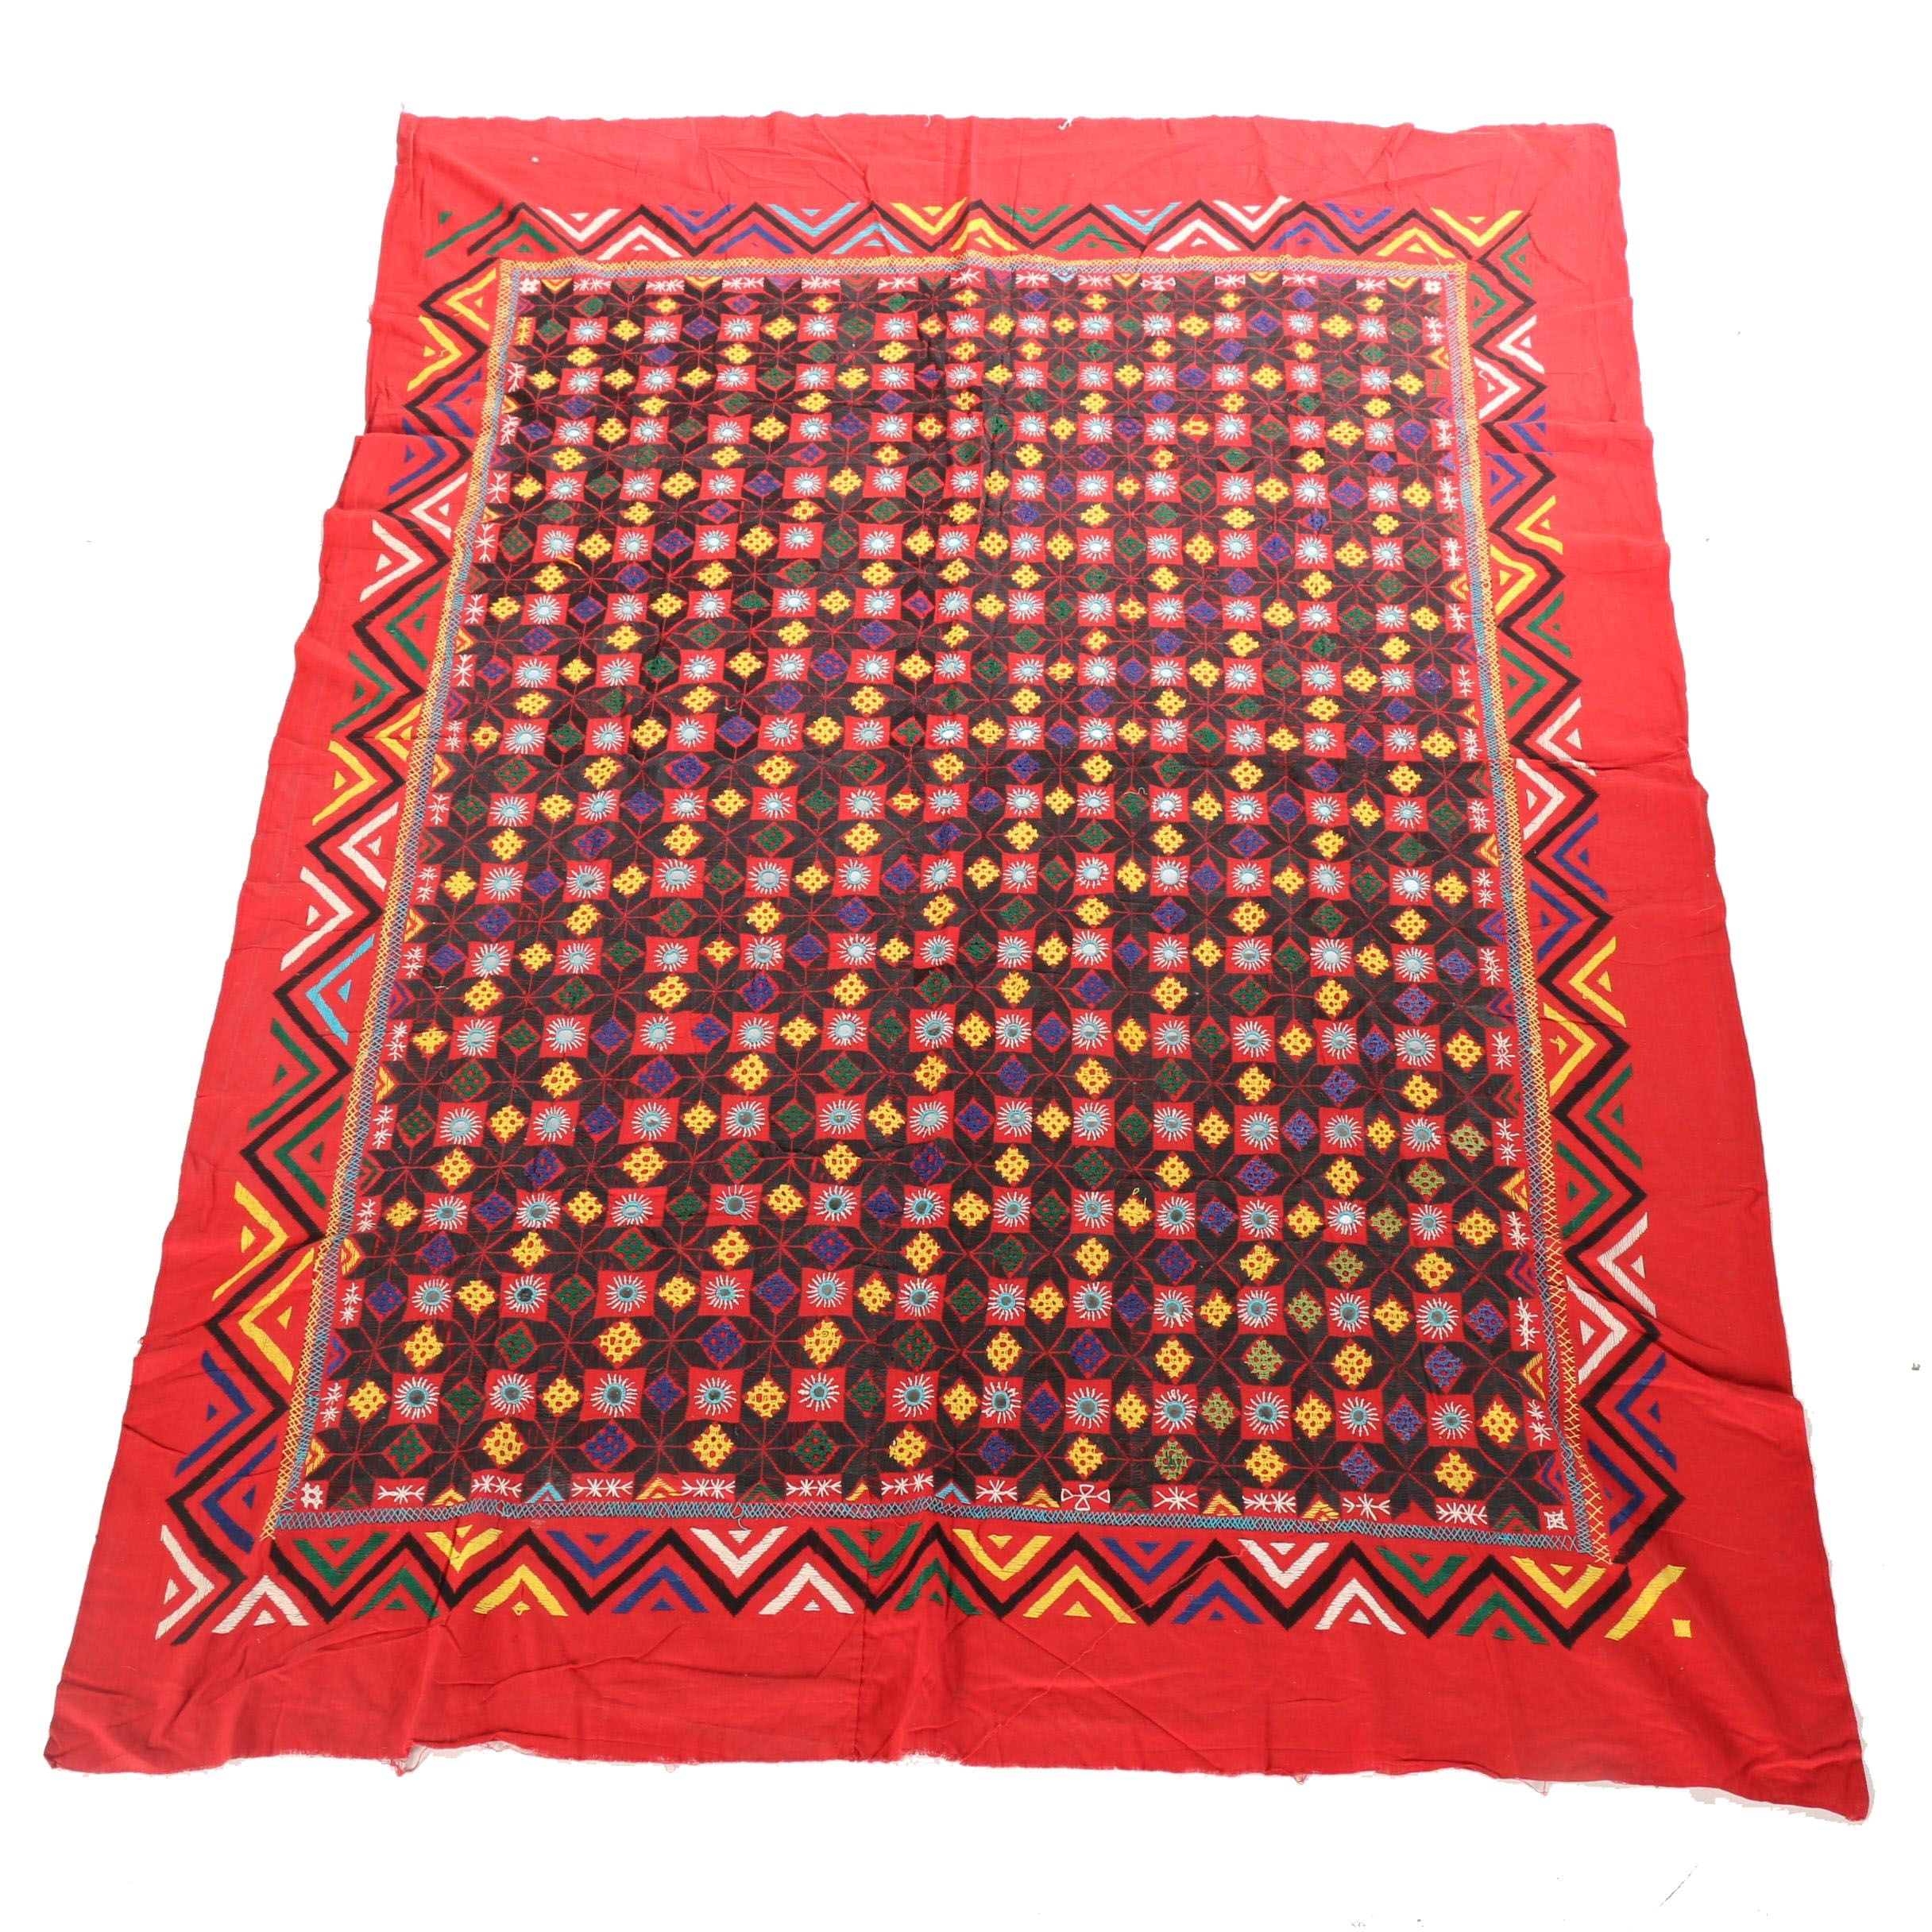 Vintage Hand Embroidered Suzani Textile